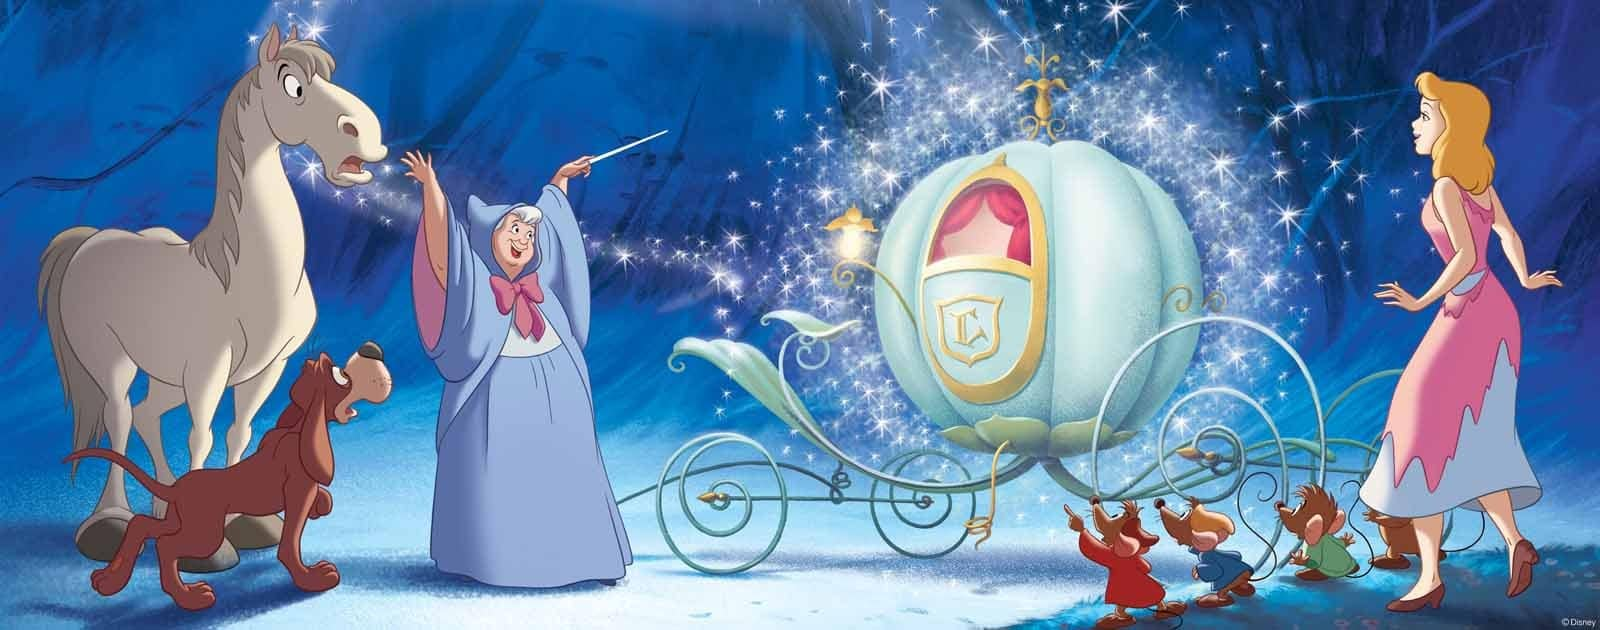 30531-00-dsn_disney_princess-cinderella_fairy_godmother_getting_ready_for_the_ball_1600px